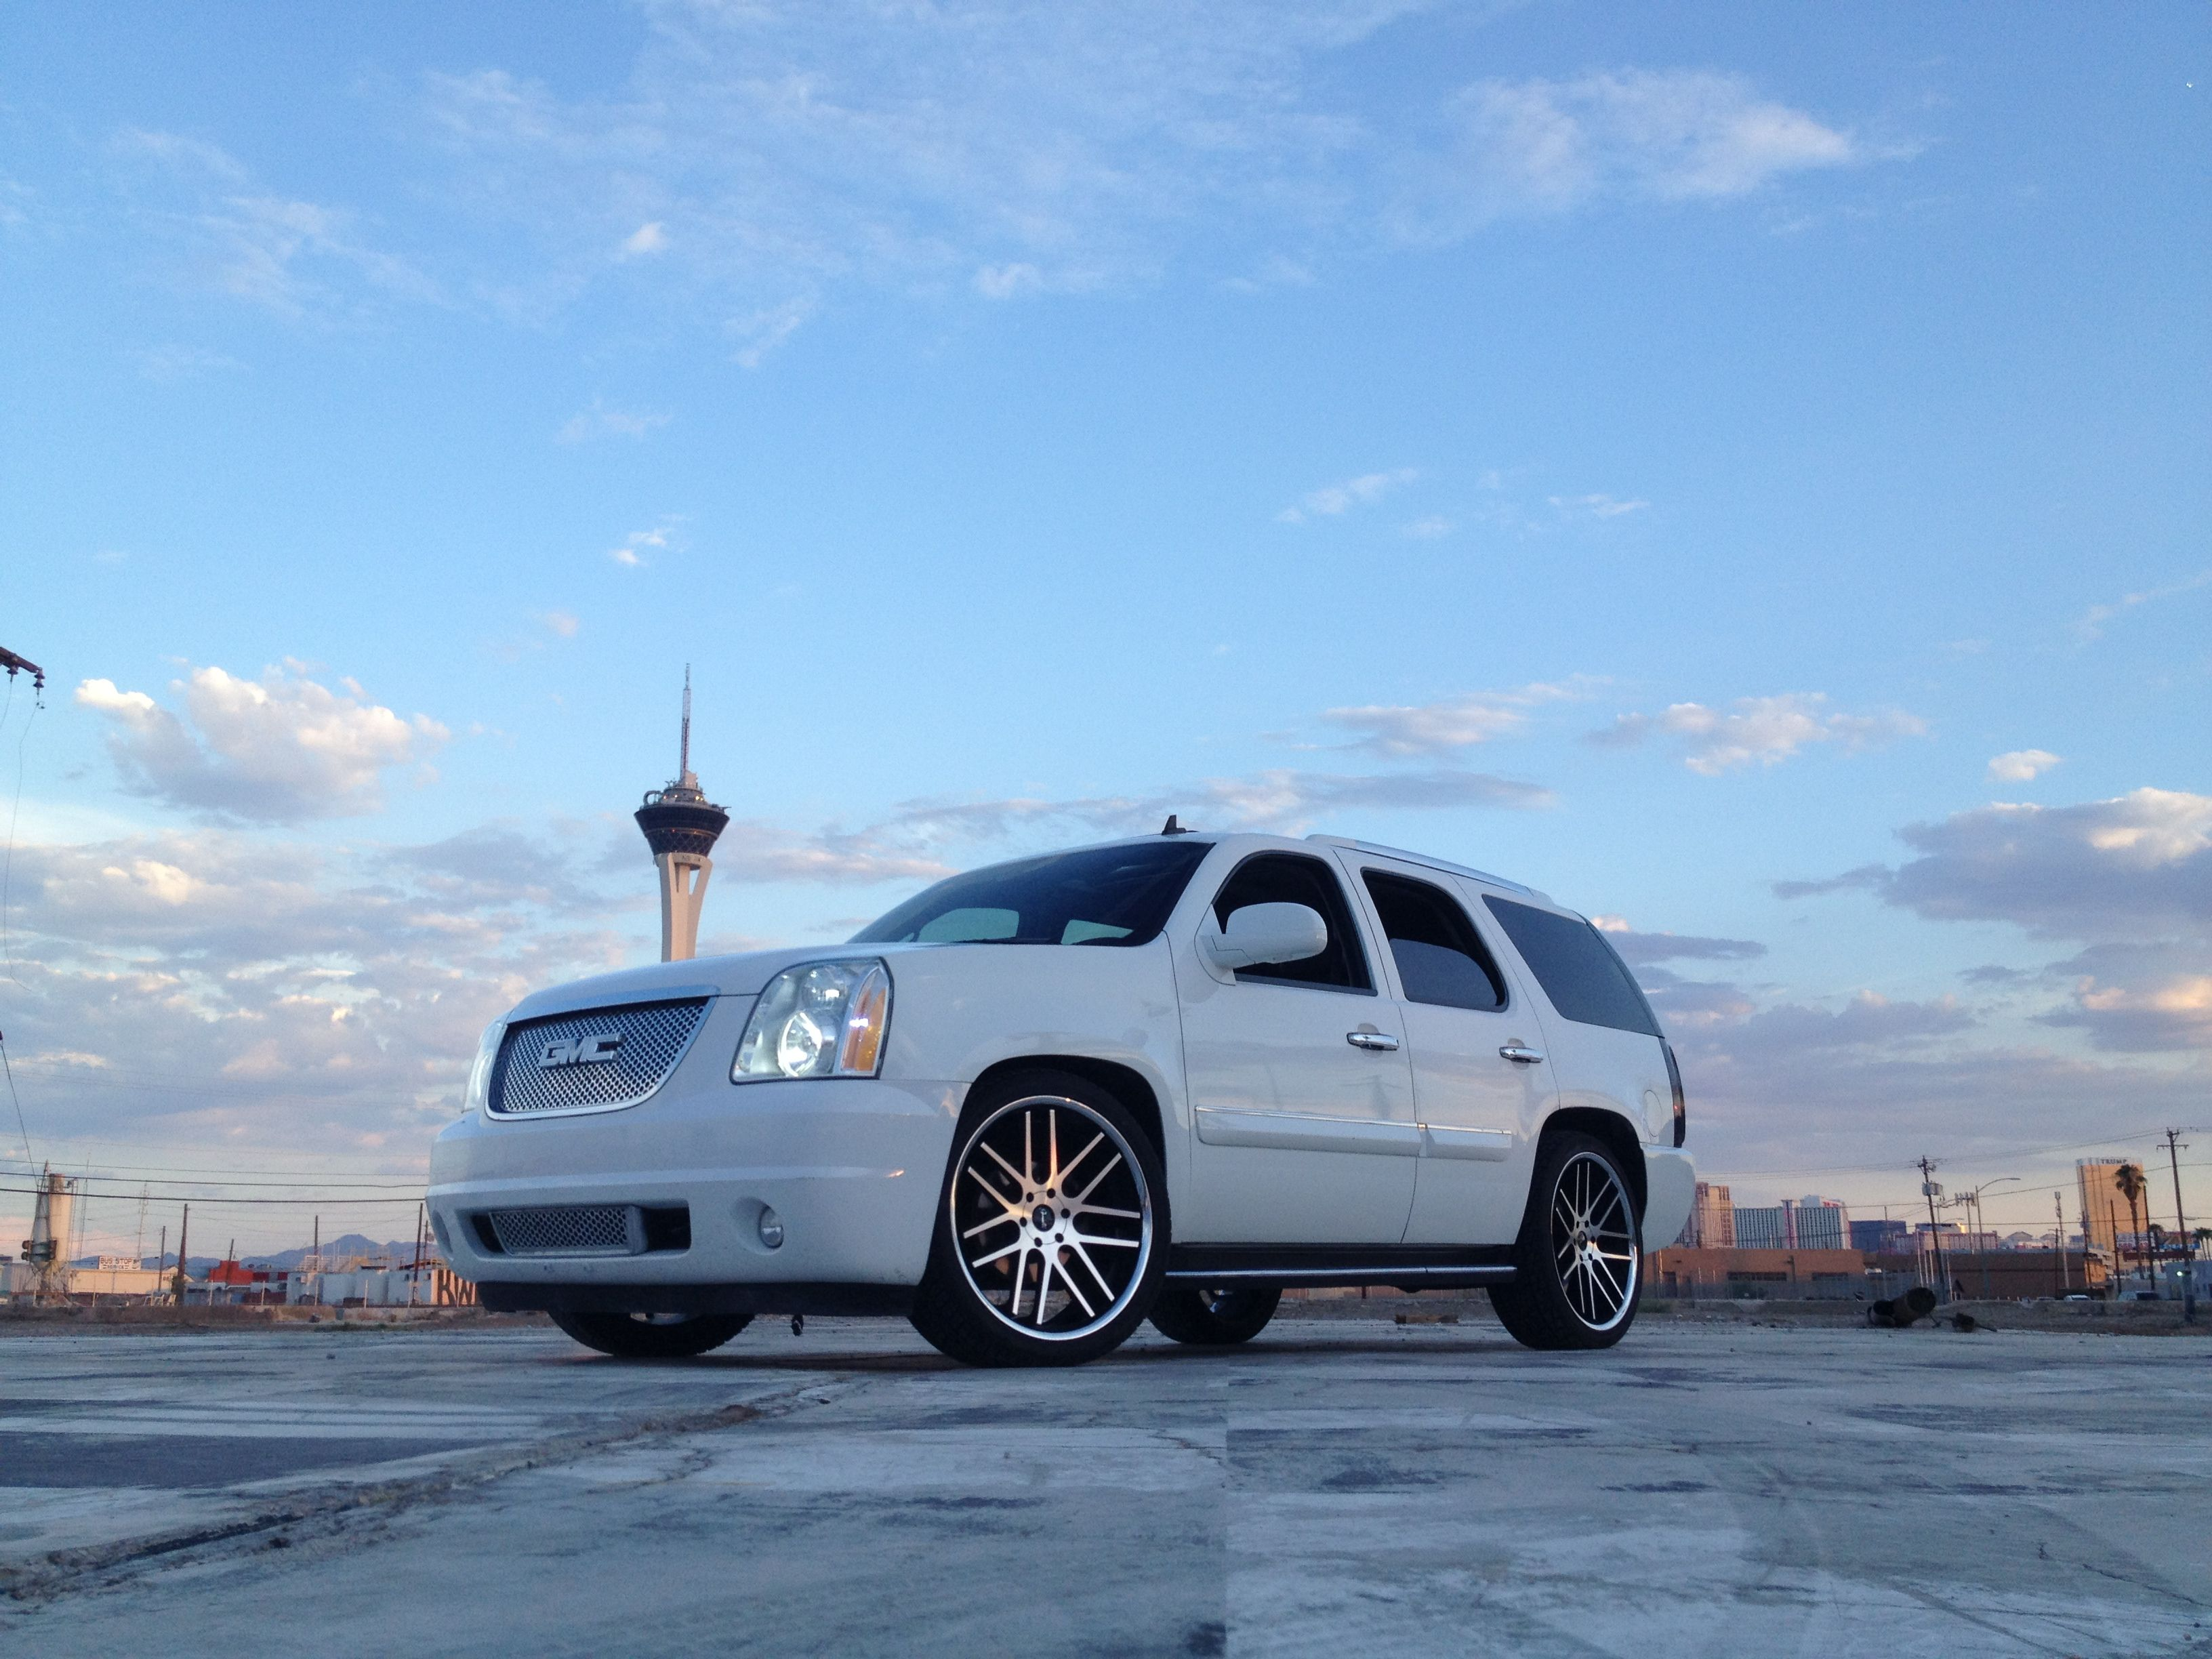 R Brizeno S Lowered Yukon Denali On 24 Gianelle Yerevans